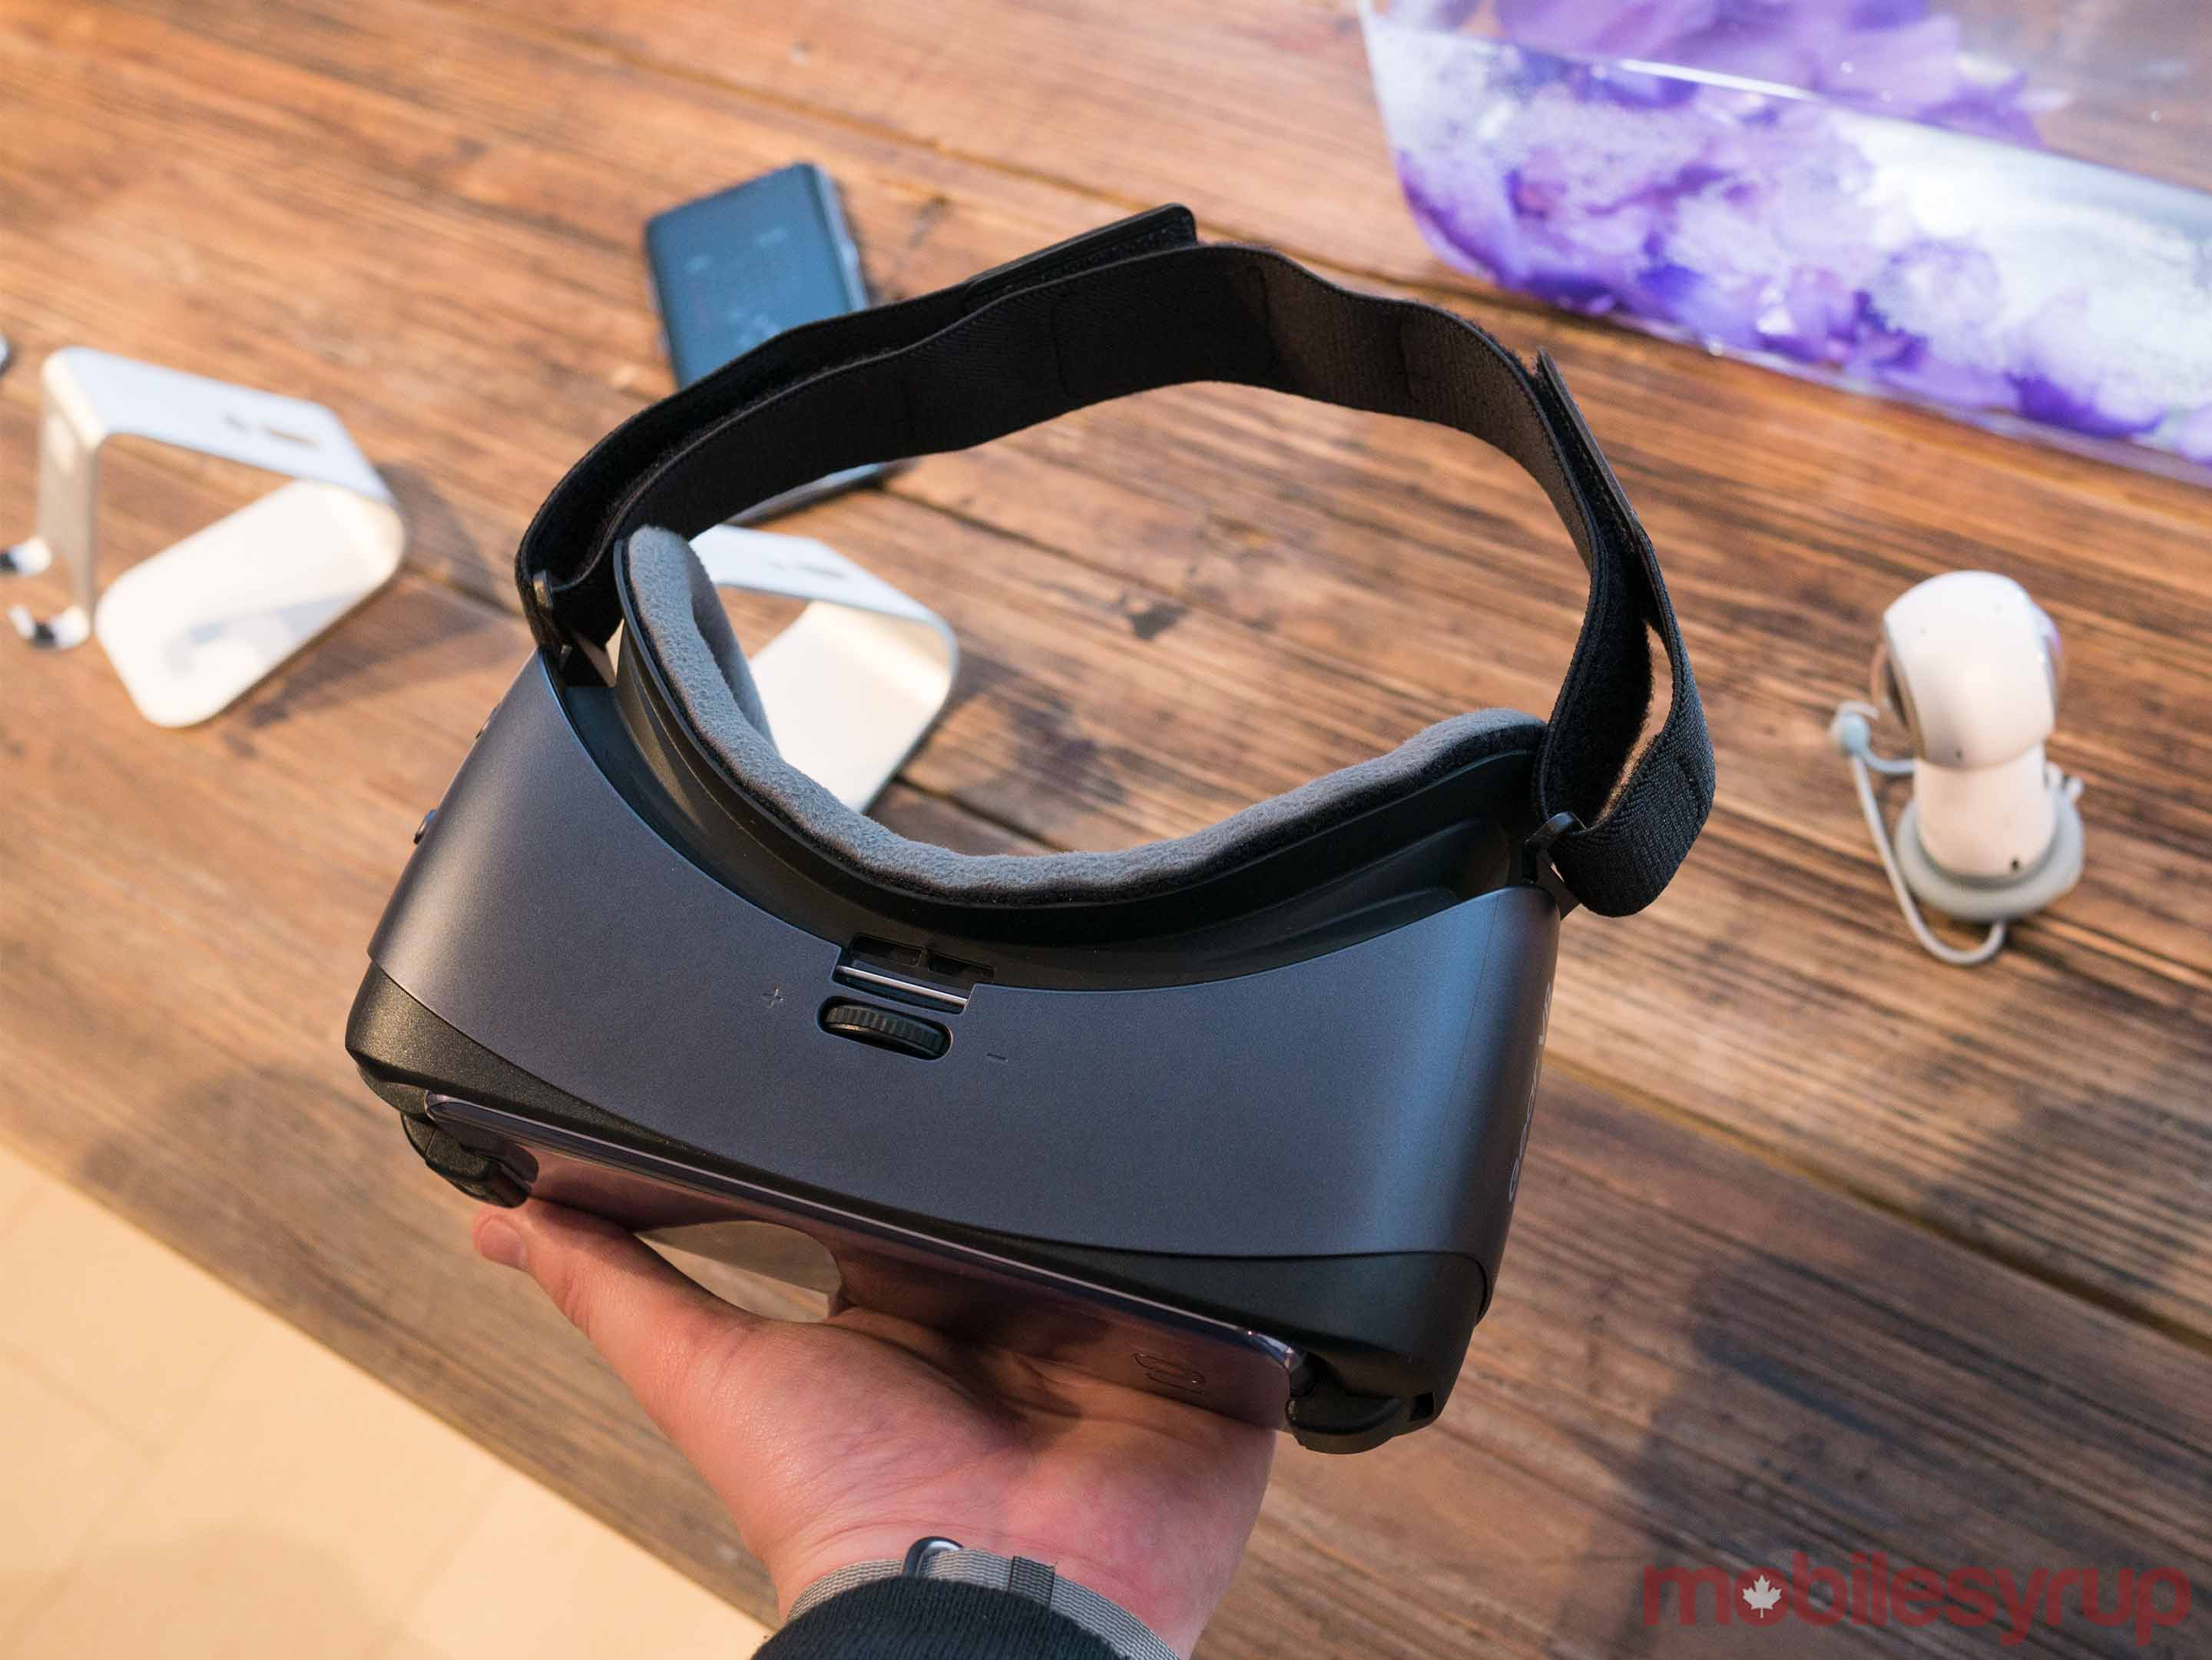 Gear VR in hand